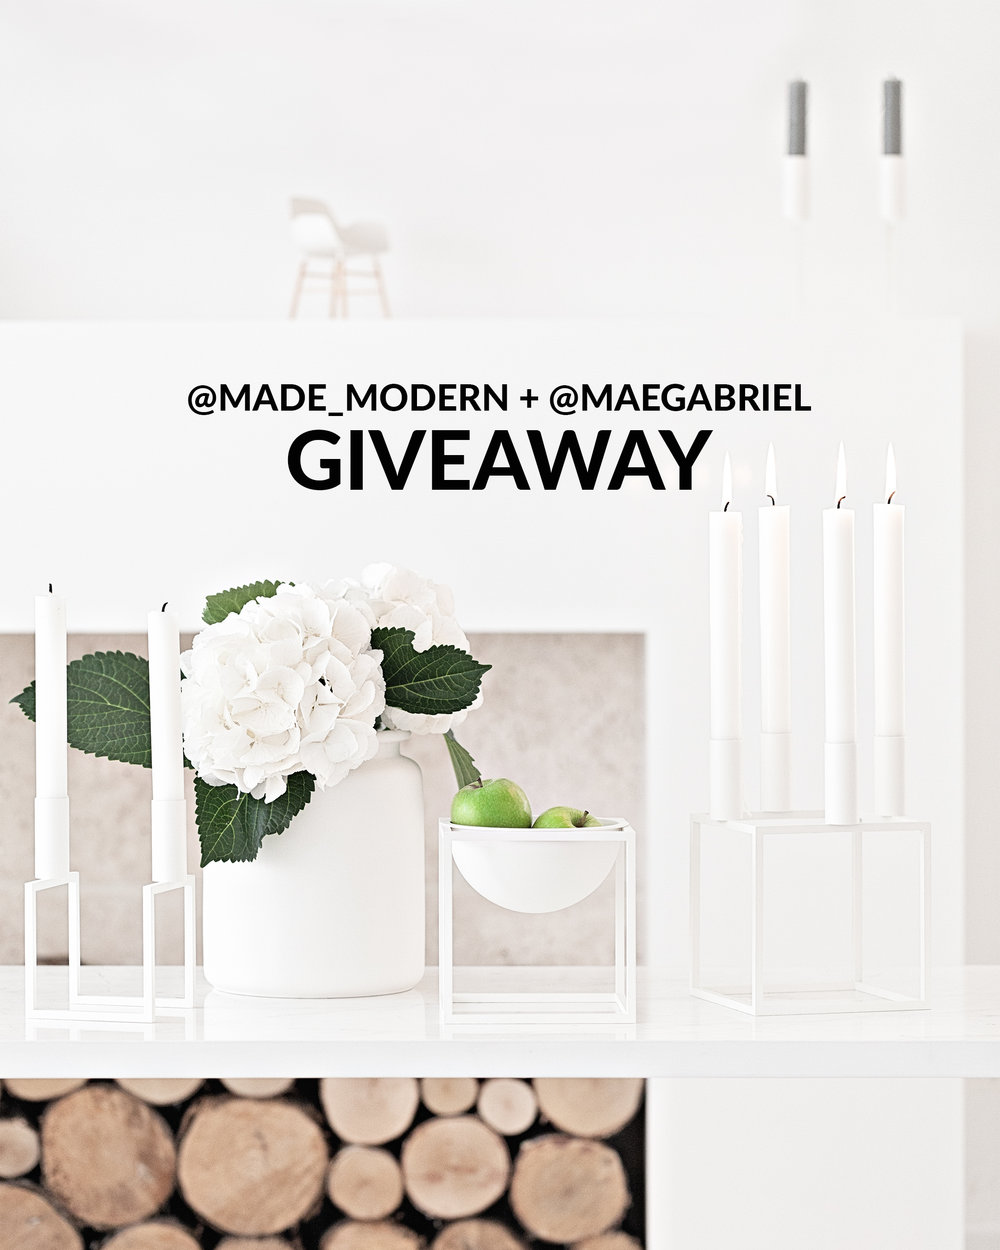 CLICK HERE TO SEE THE GIVEAWAY ON INSTAGRAM @MAEGABRIEL